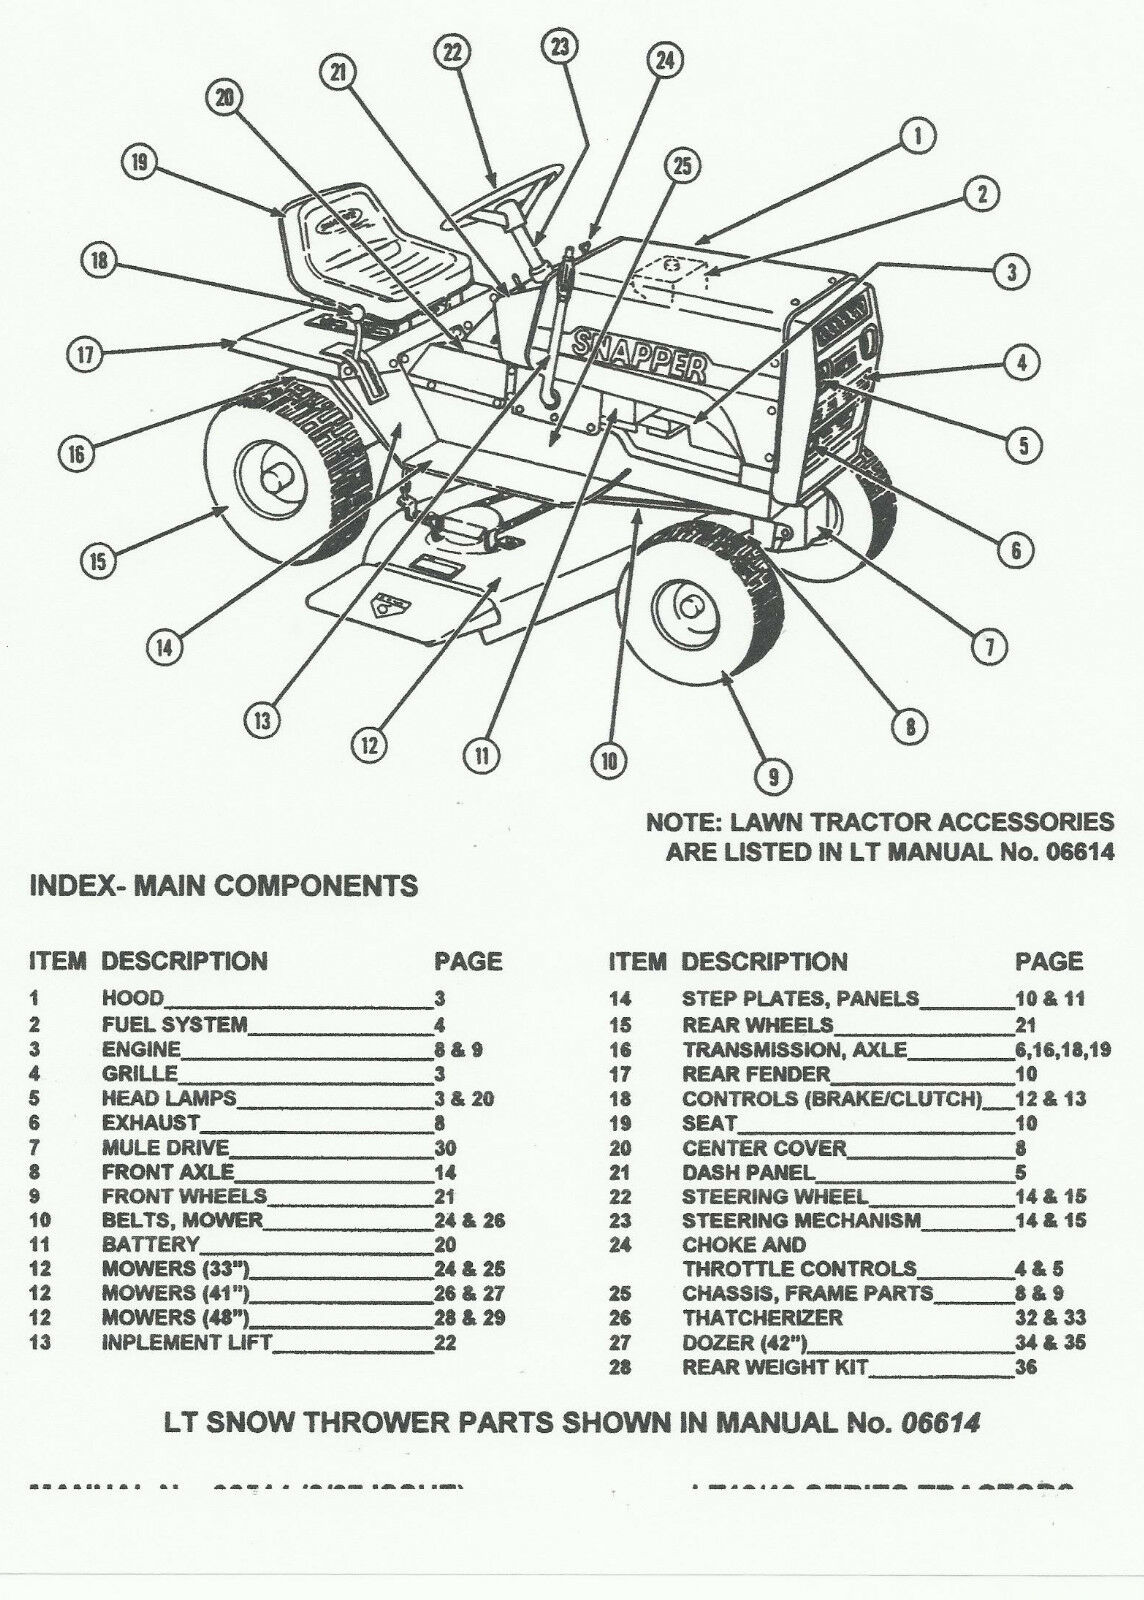 1987 porsche 944 engine diagram html imageresizertool com porsche 911 fuse  box diagram porsche 928 fuse